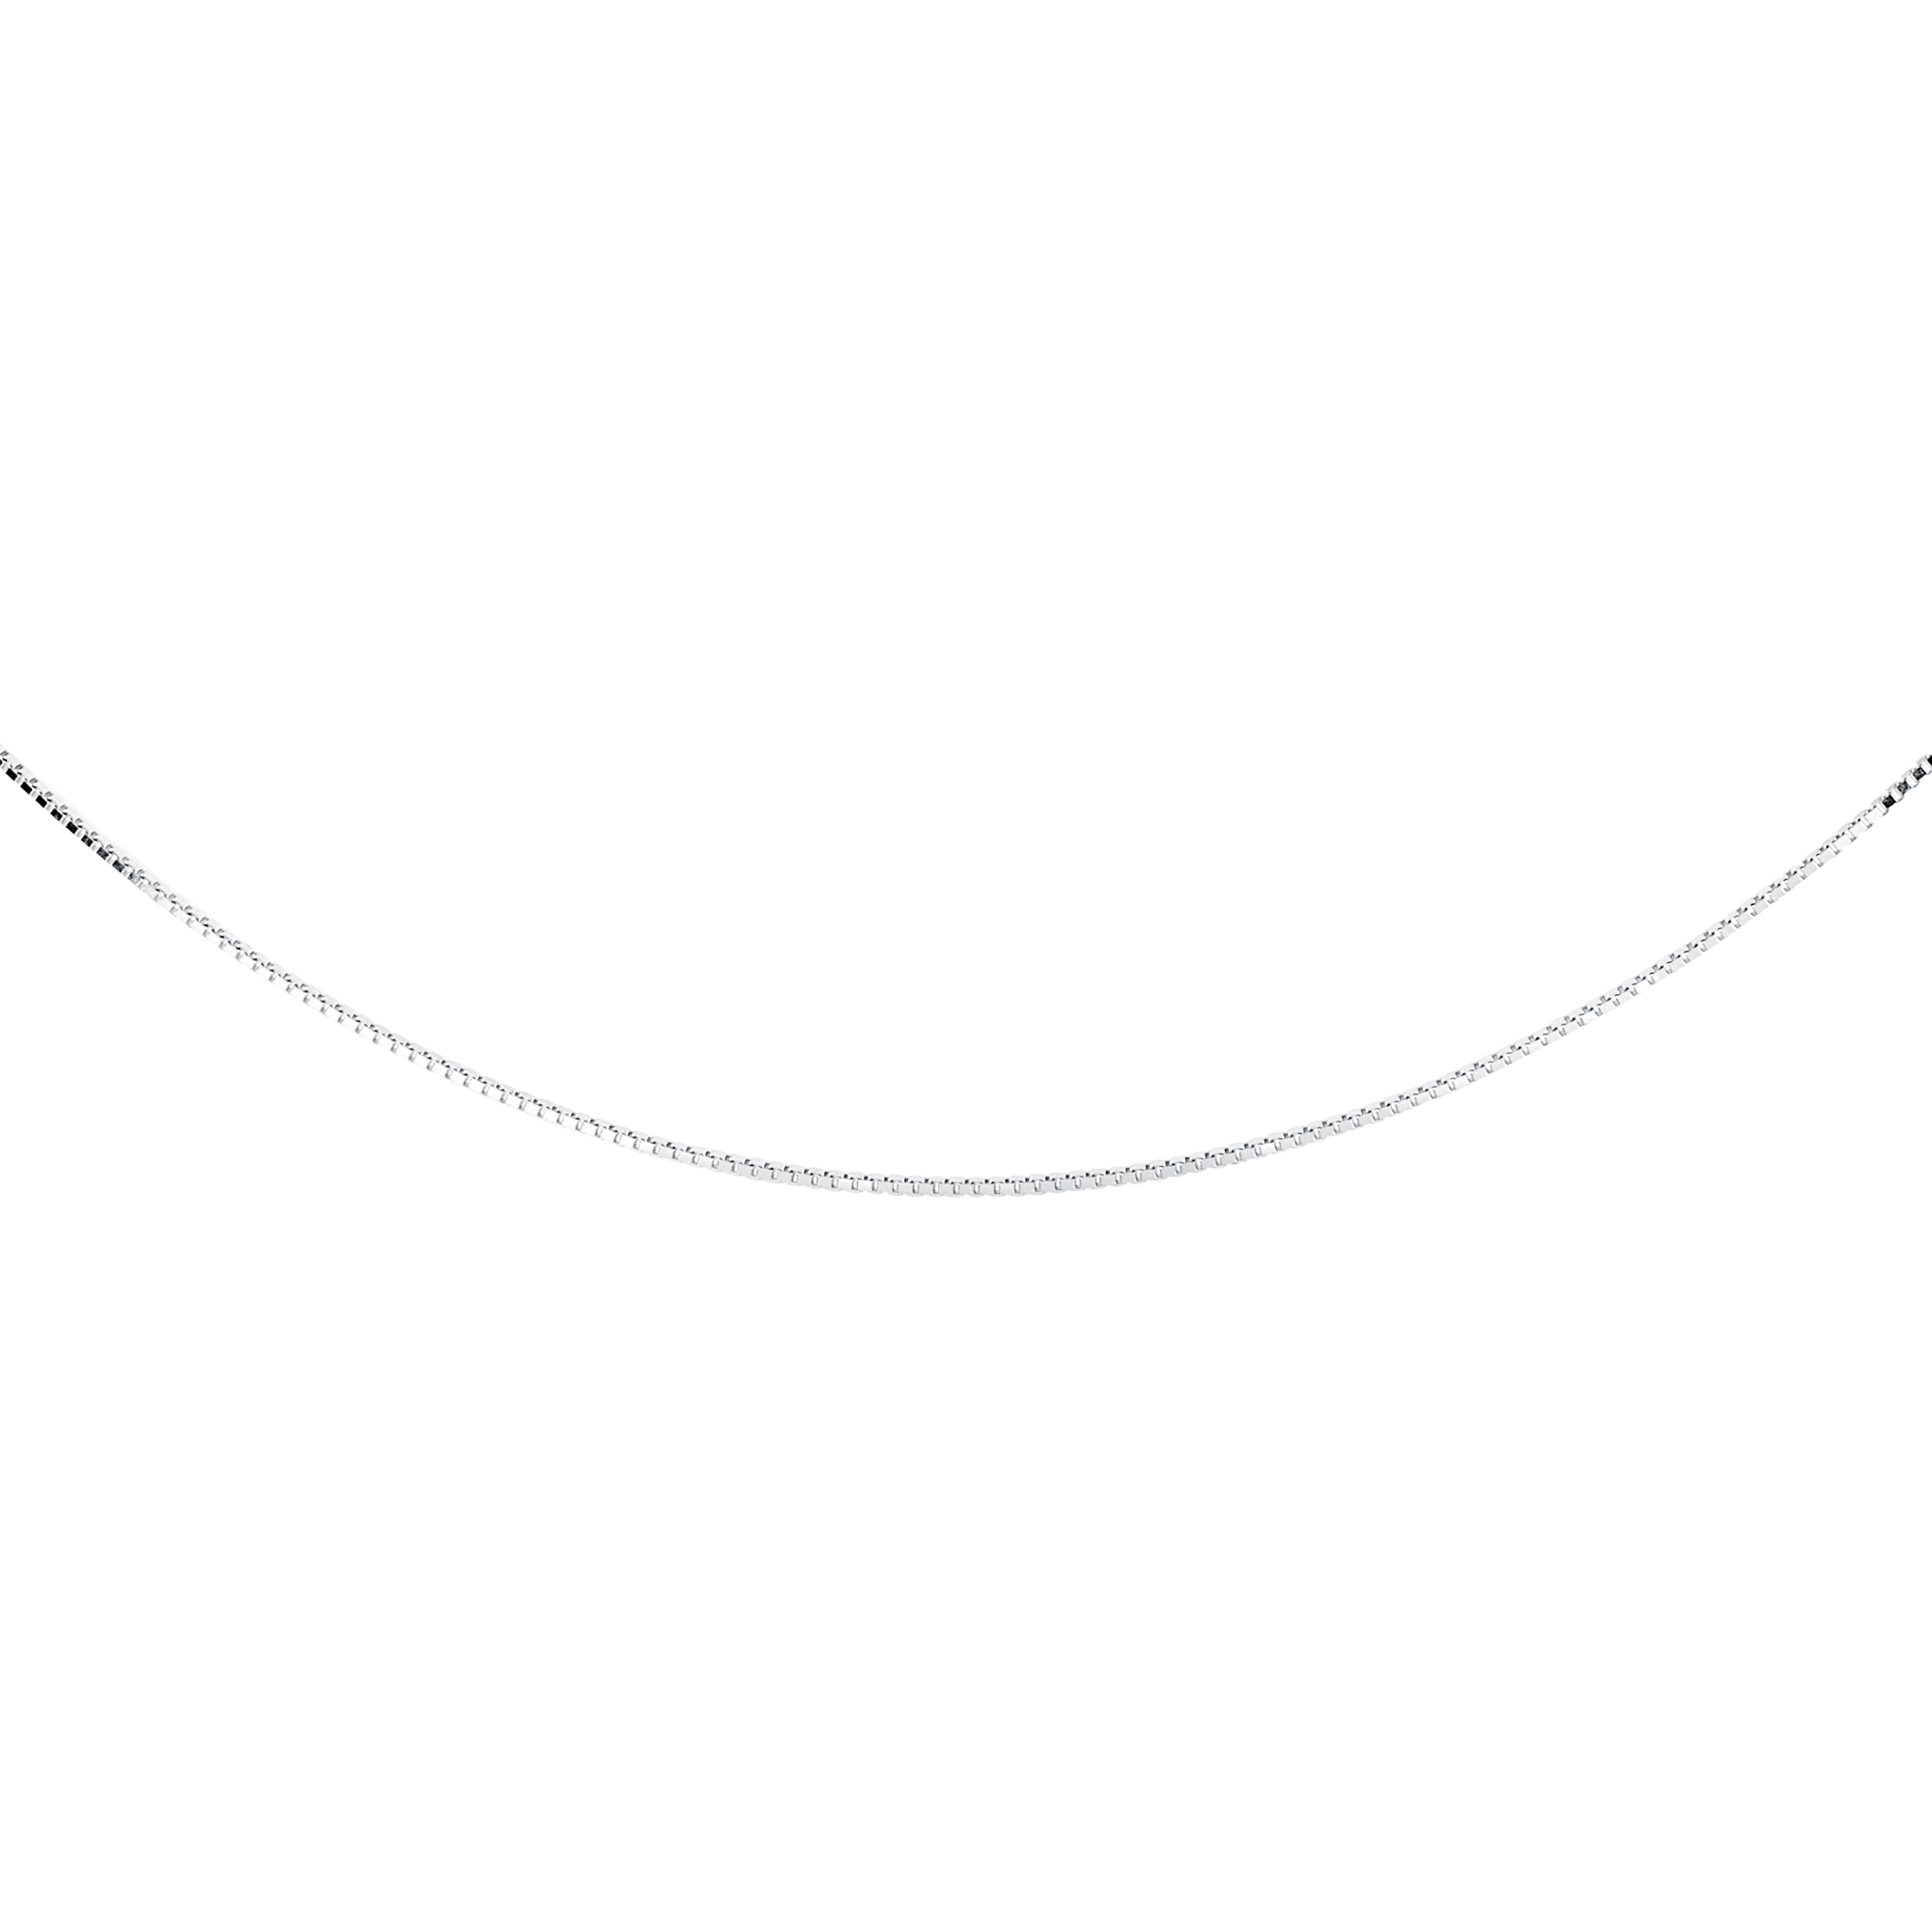 12'' box chain for babies - Sterling silver & rhodium plated finish